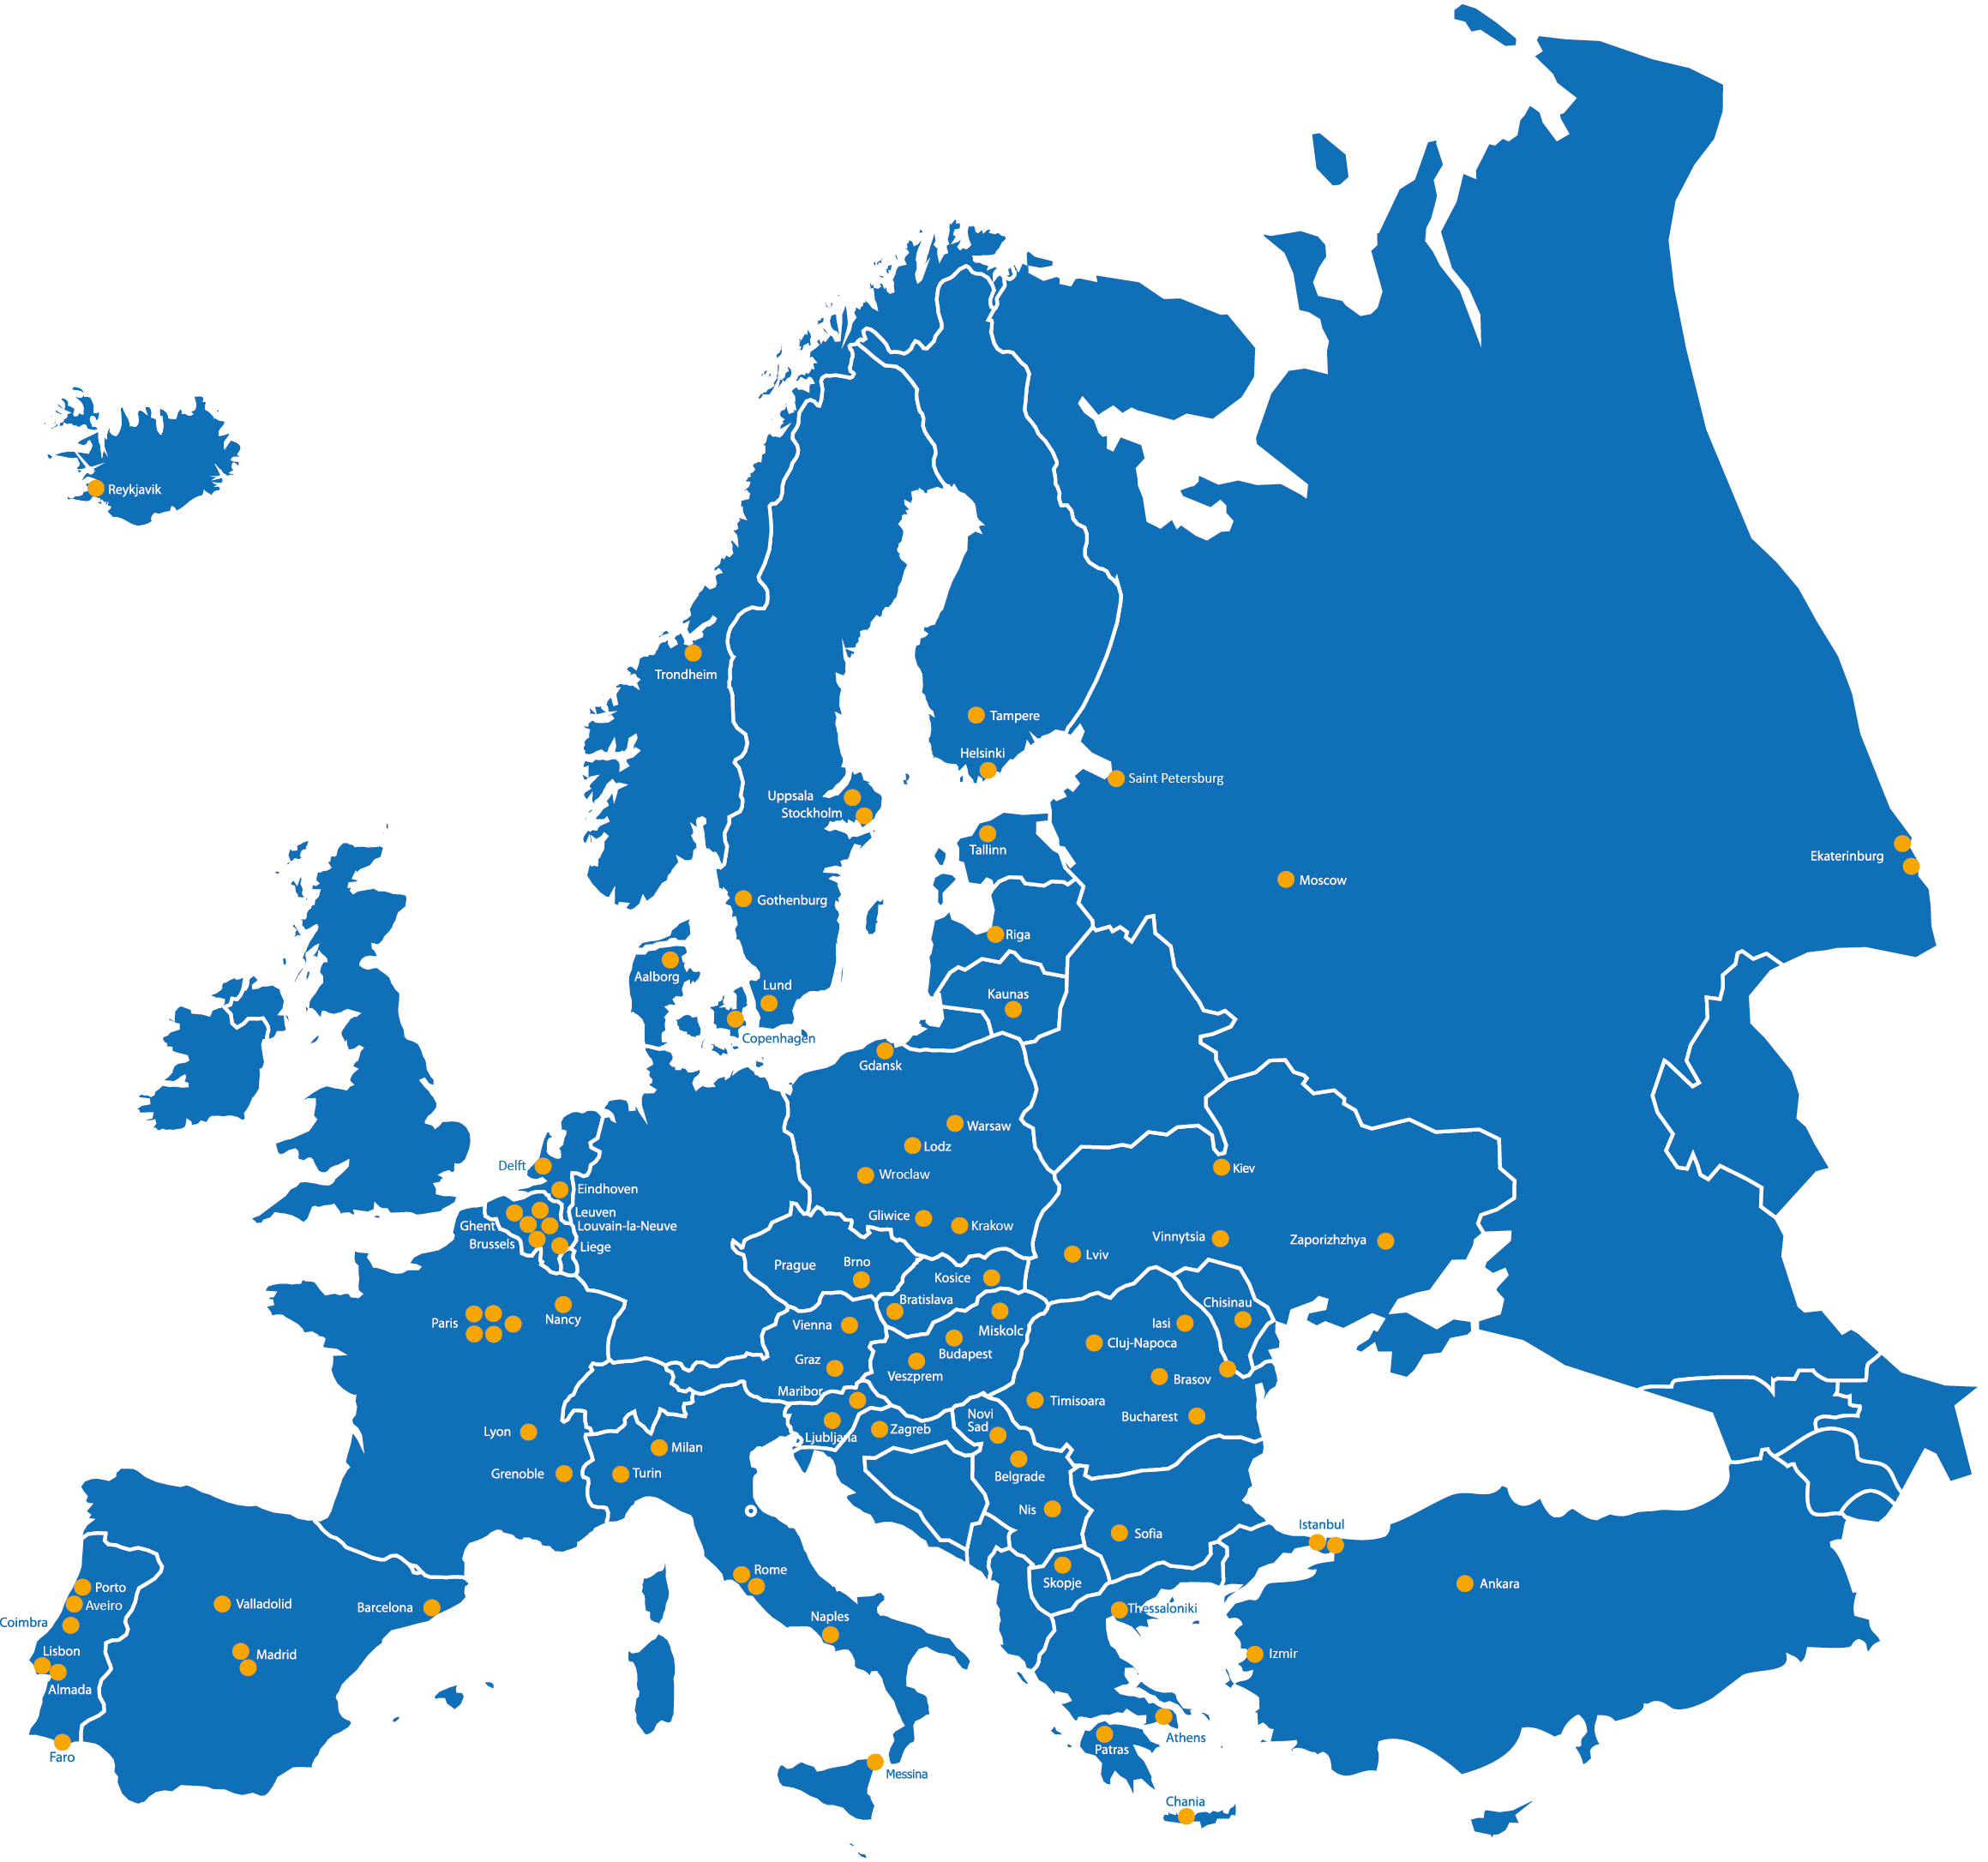 File:Blank map europe.png